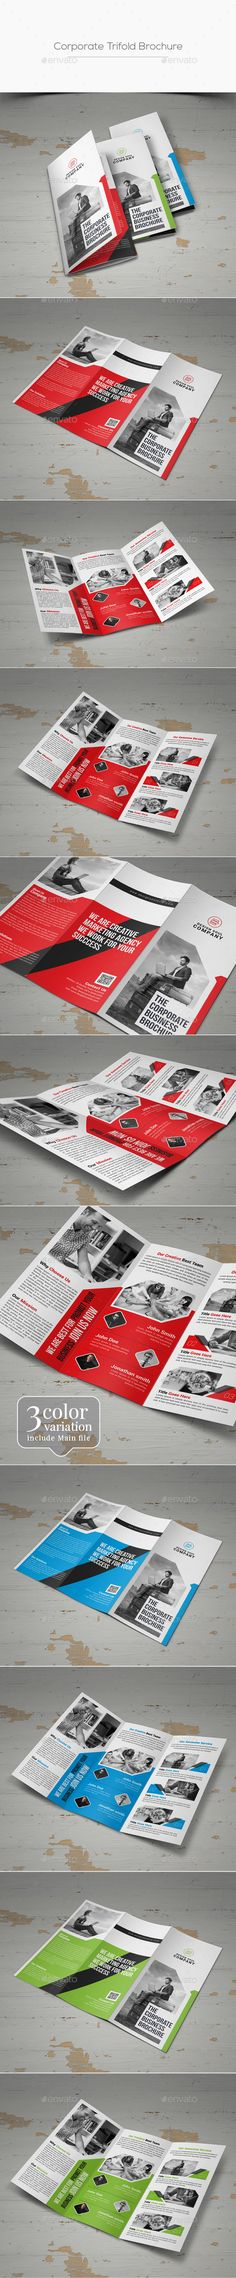 Corporate Trifold Brochure Design Template - Corporate Brochures Design Template PSD. Download here: https://graphicriver.net/item/trifold-brochure/19445992?ref=yinkira